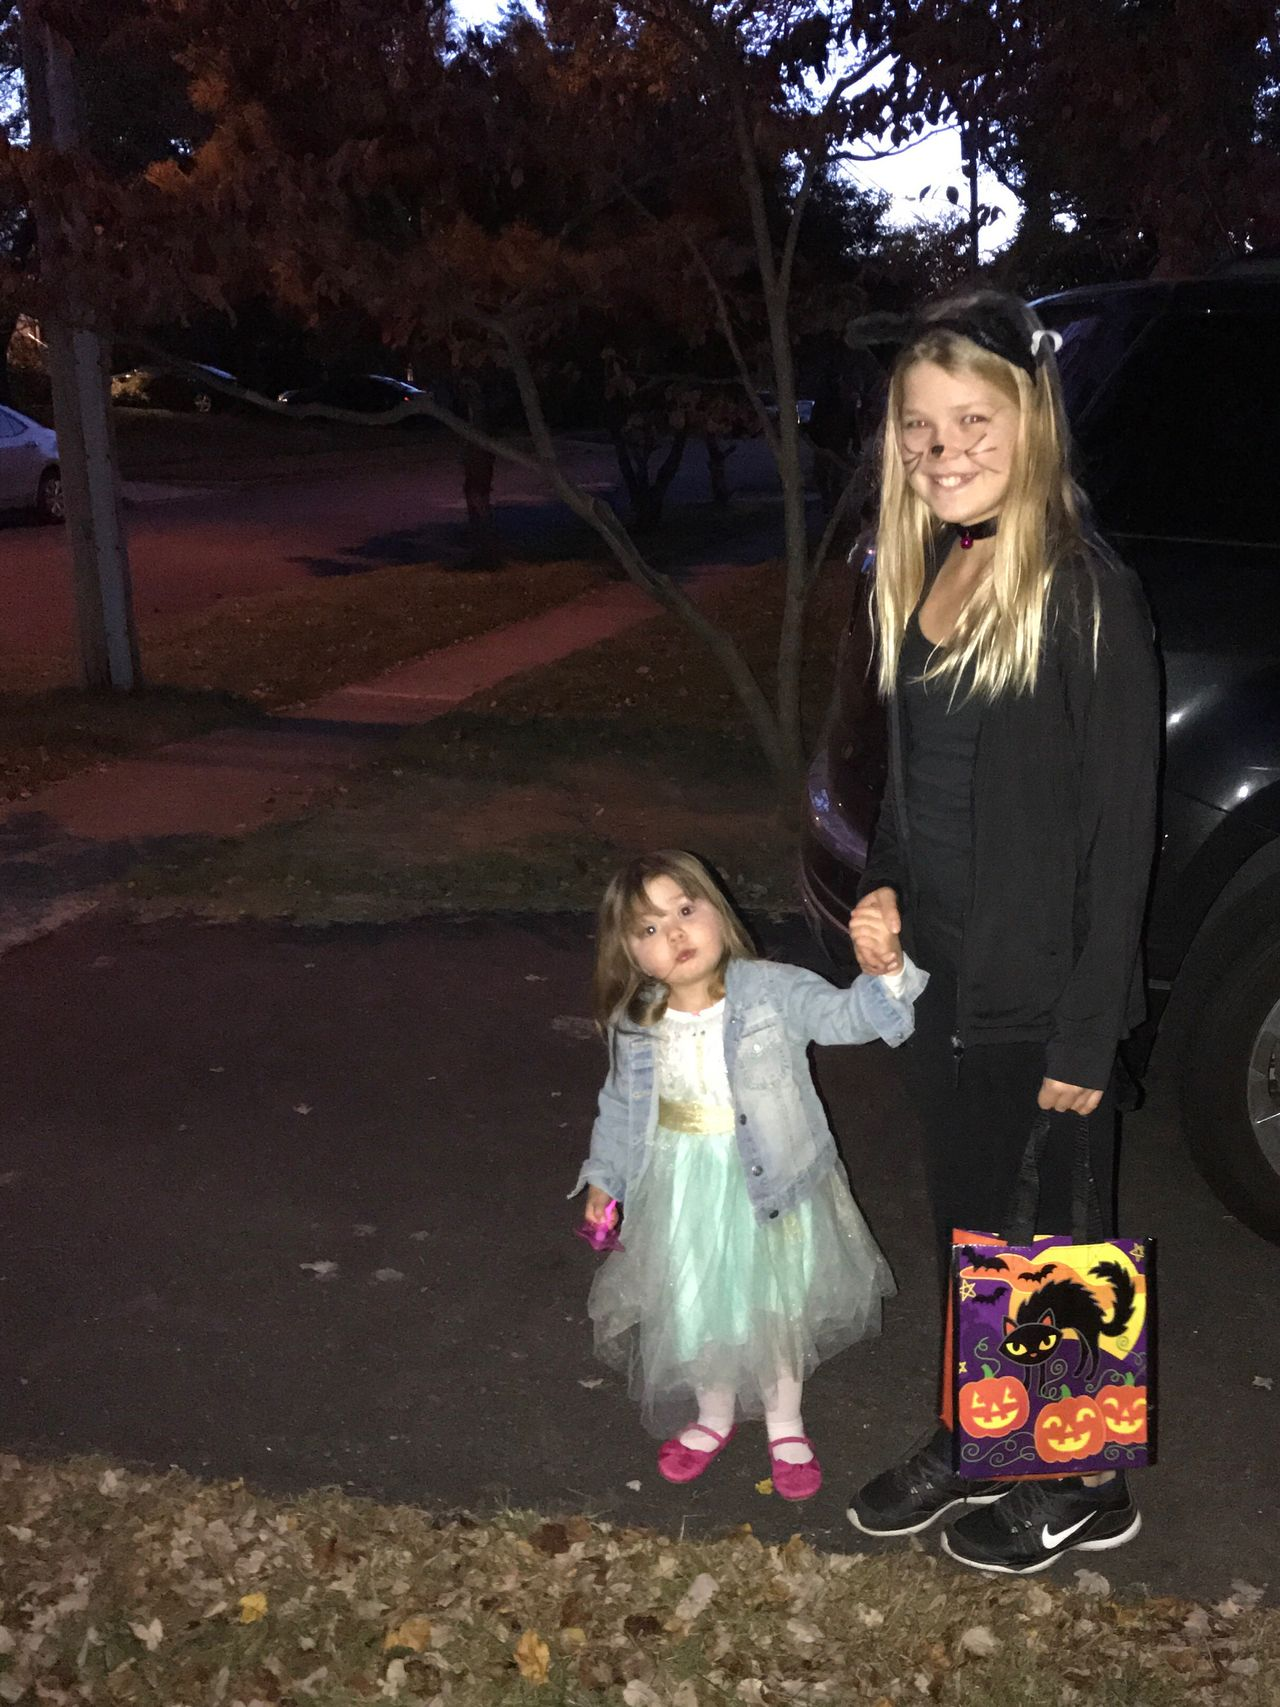 Halloween night - trick or treating Two People Night Outdoors Girls